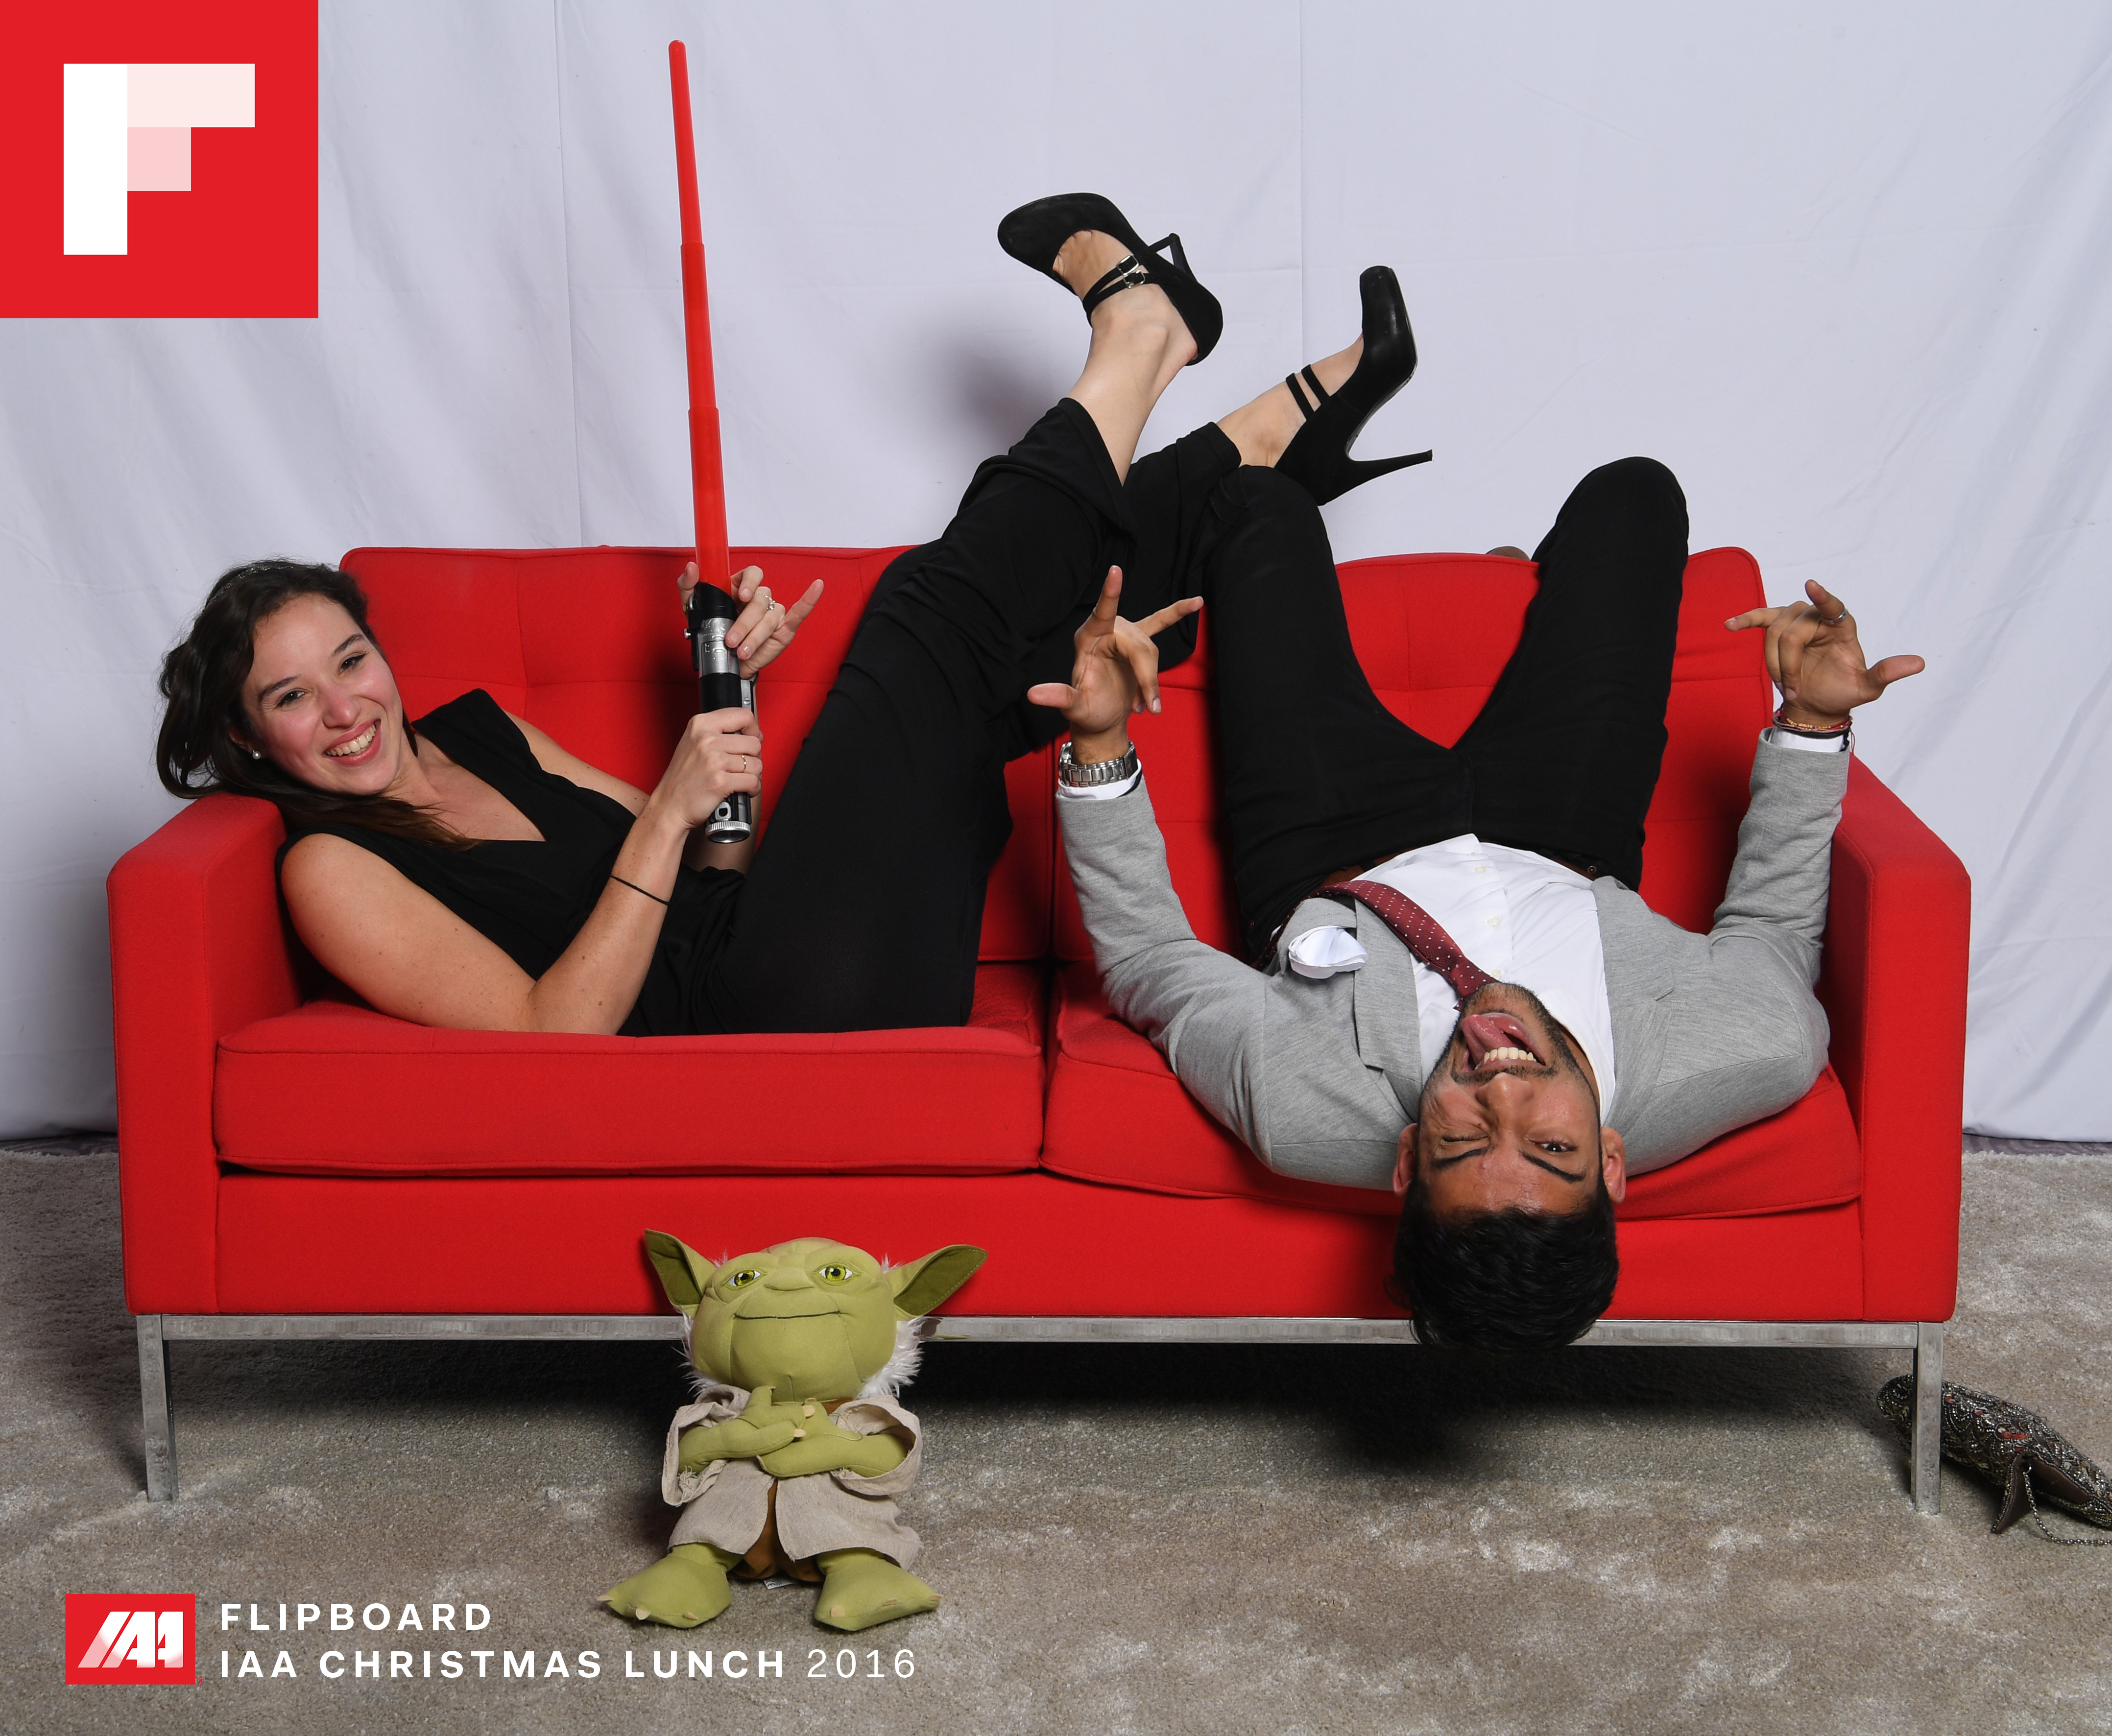 Flipboard Red Couch at the IAA Xmas Lunch in London.